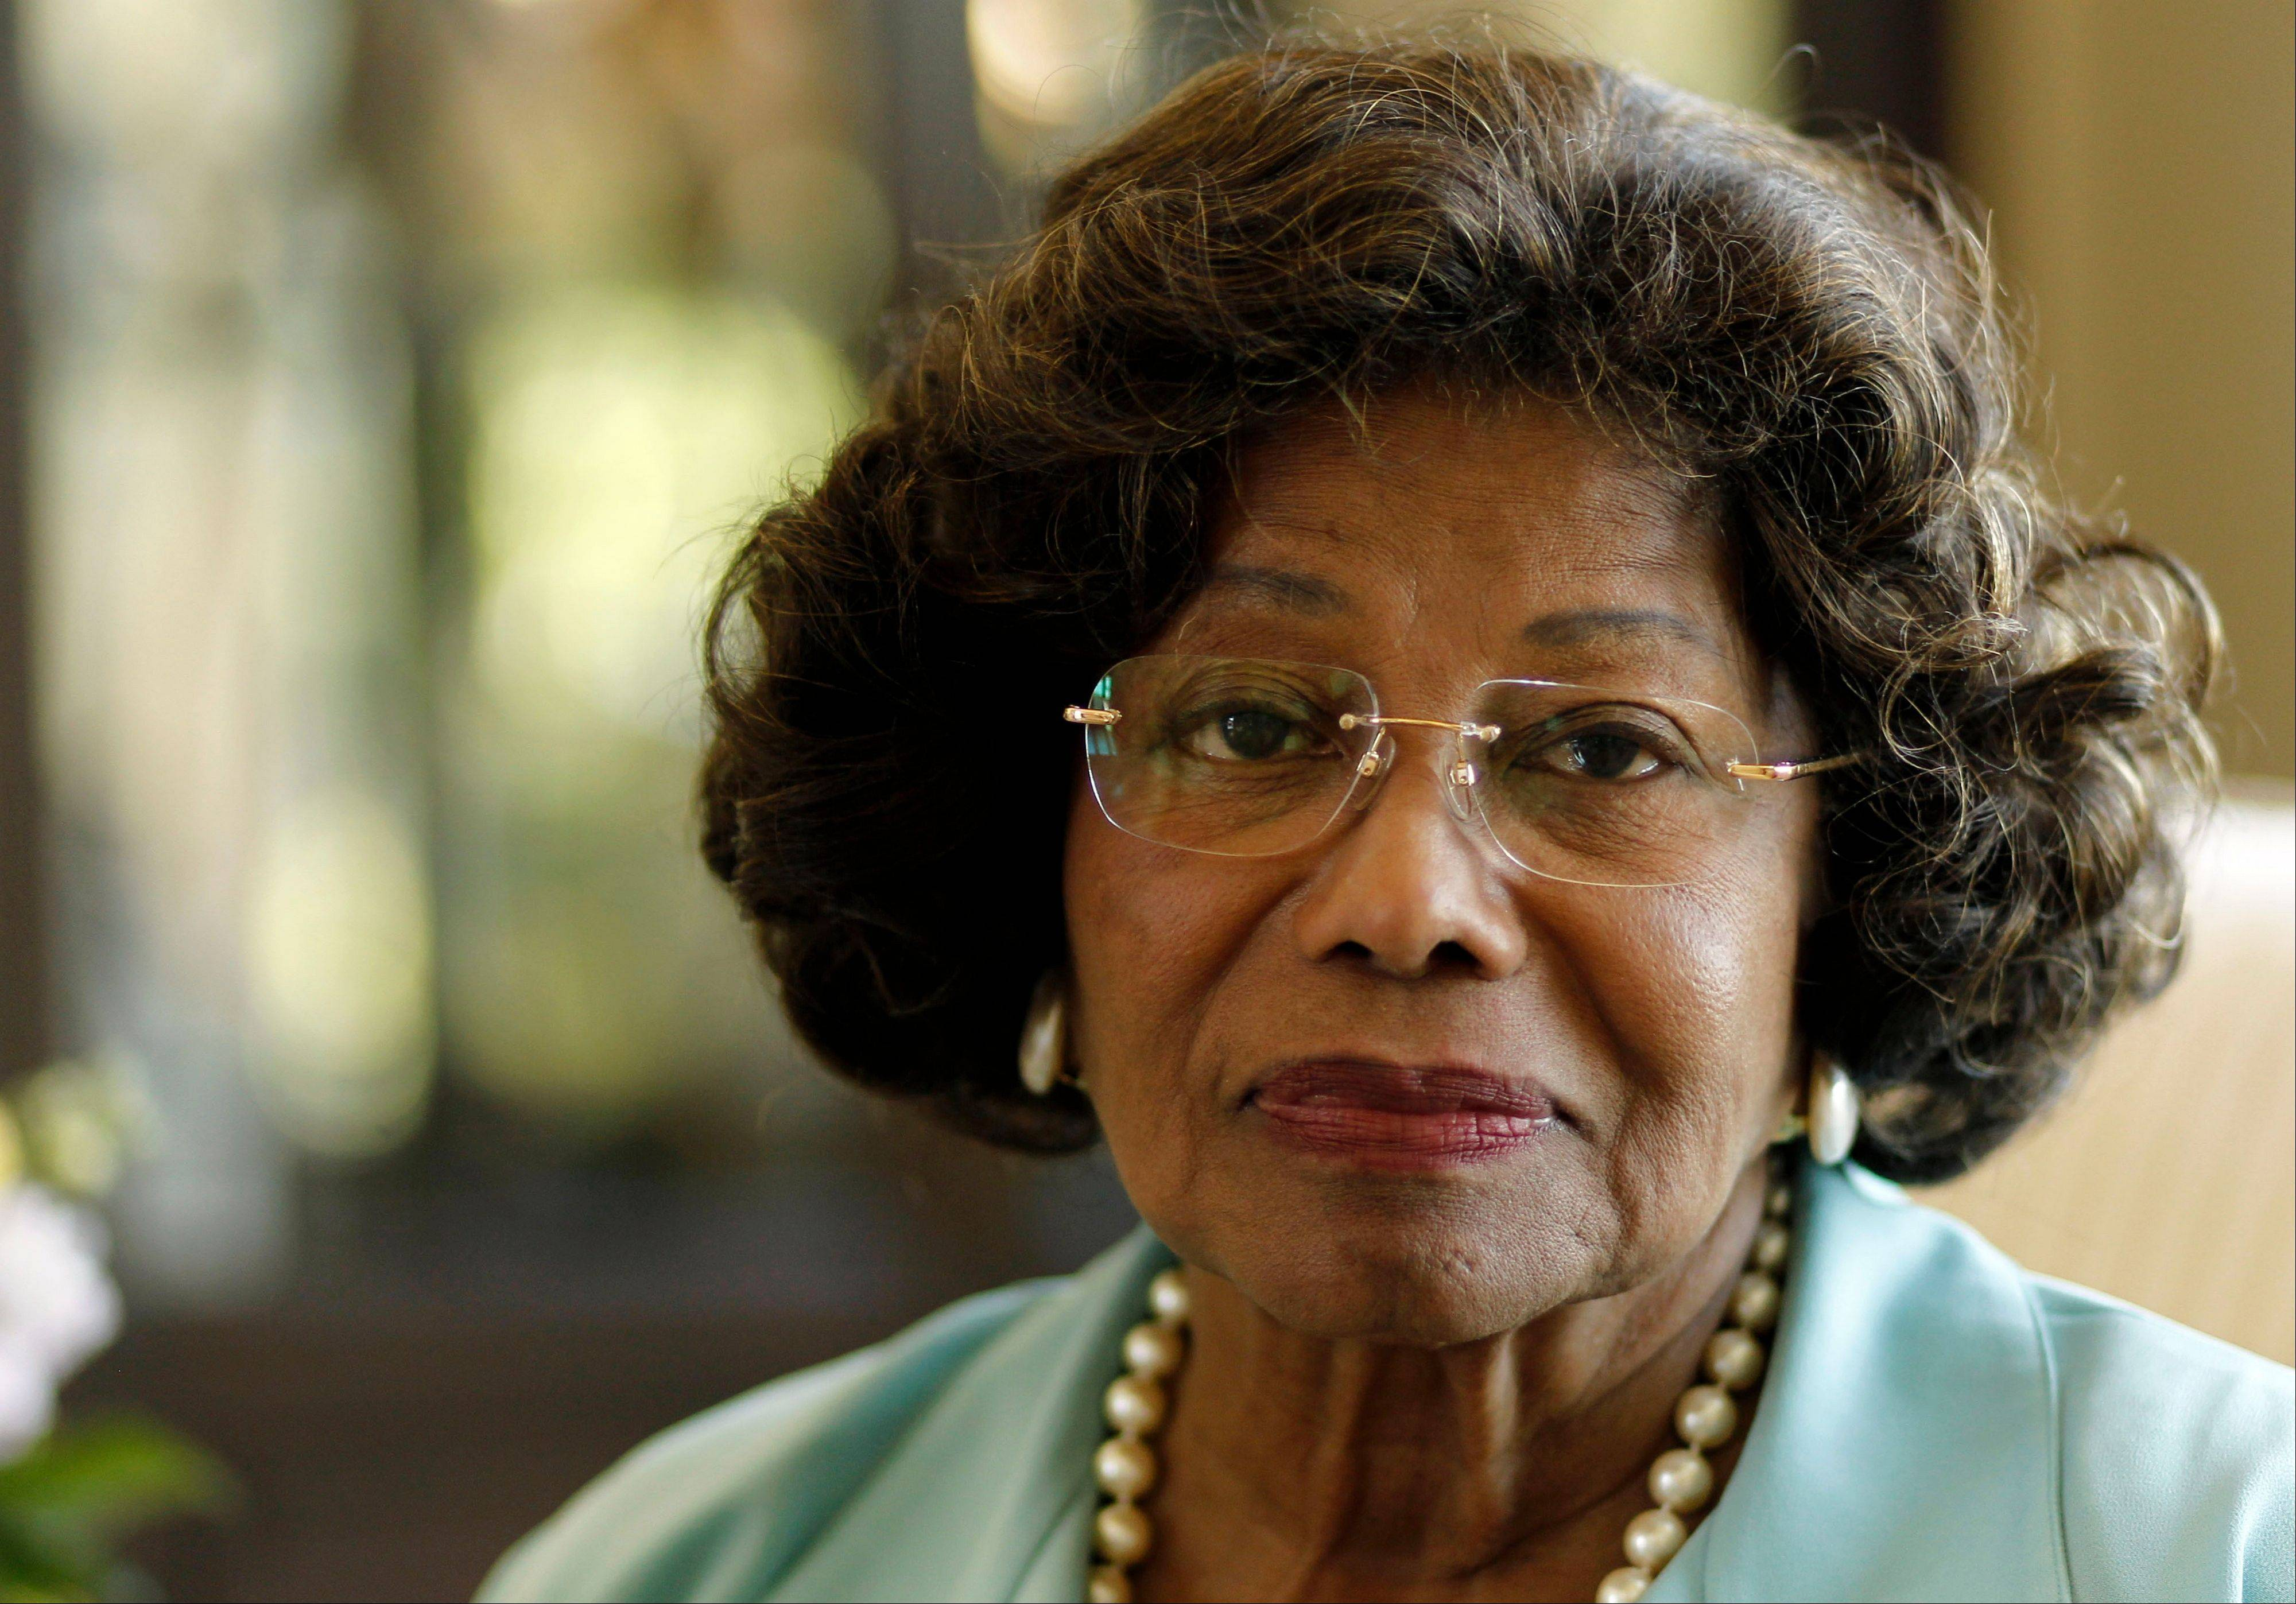 Katherine Jackson, mother of Michael Jackson, claimed her son's concert promoter was responsible for hiring the doctor convicted of causing his 2009 death.